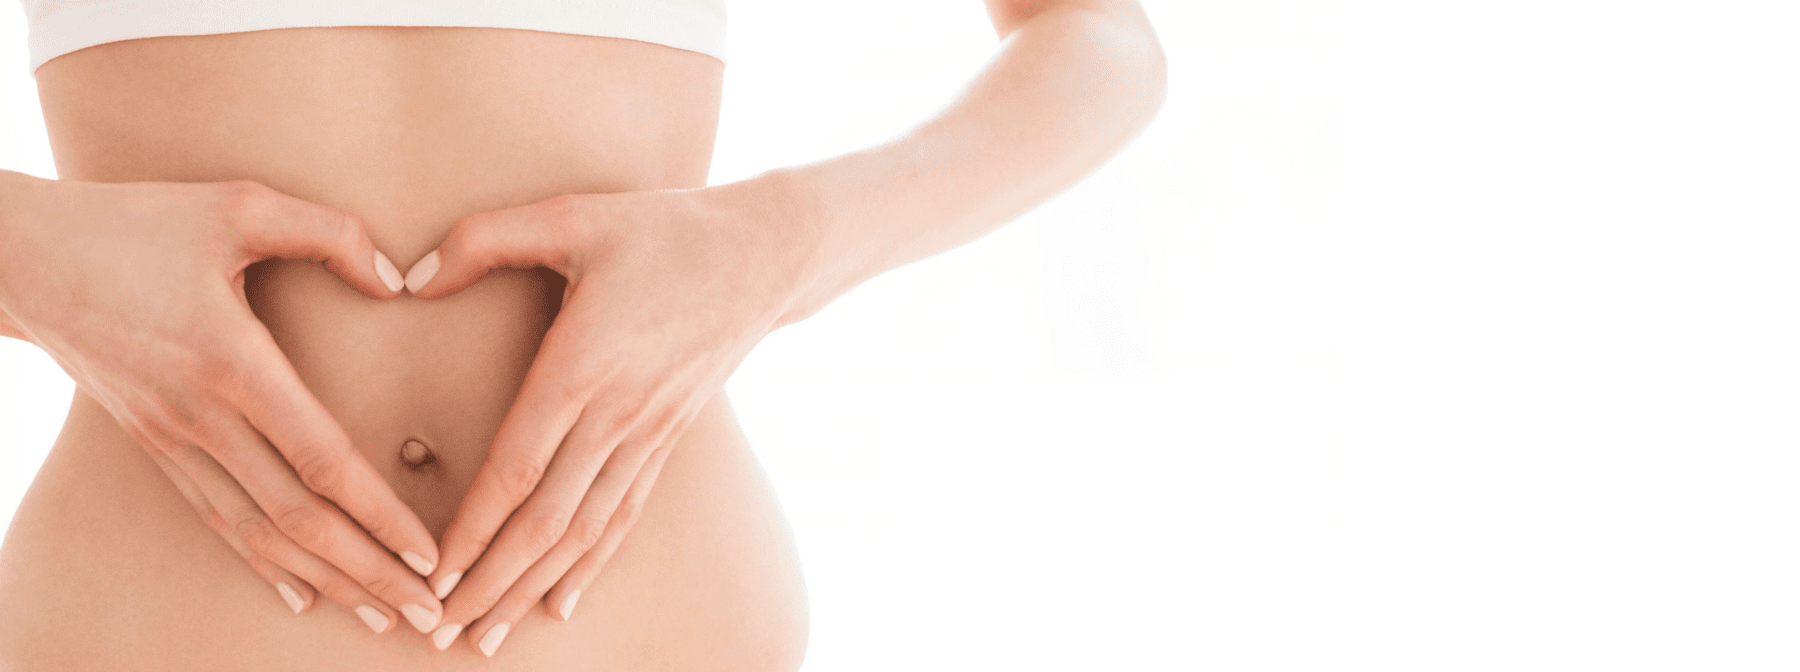 Your Gut: The Most Important Organ You've Never Heard Of